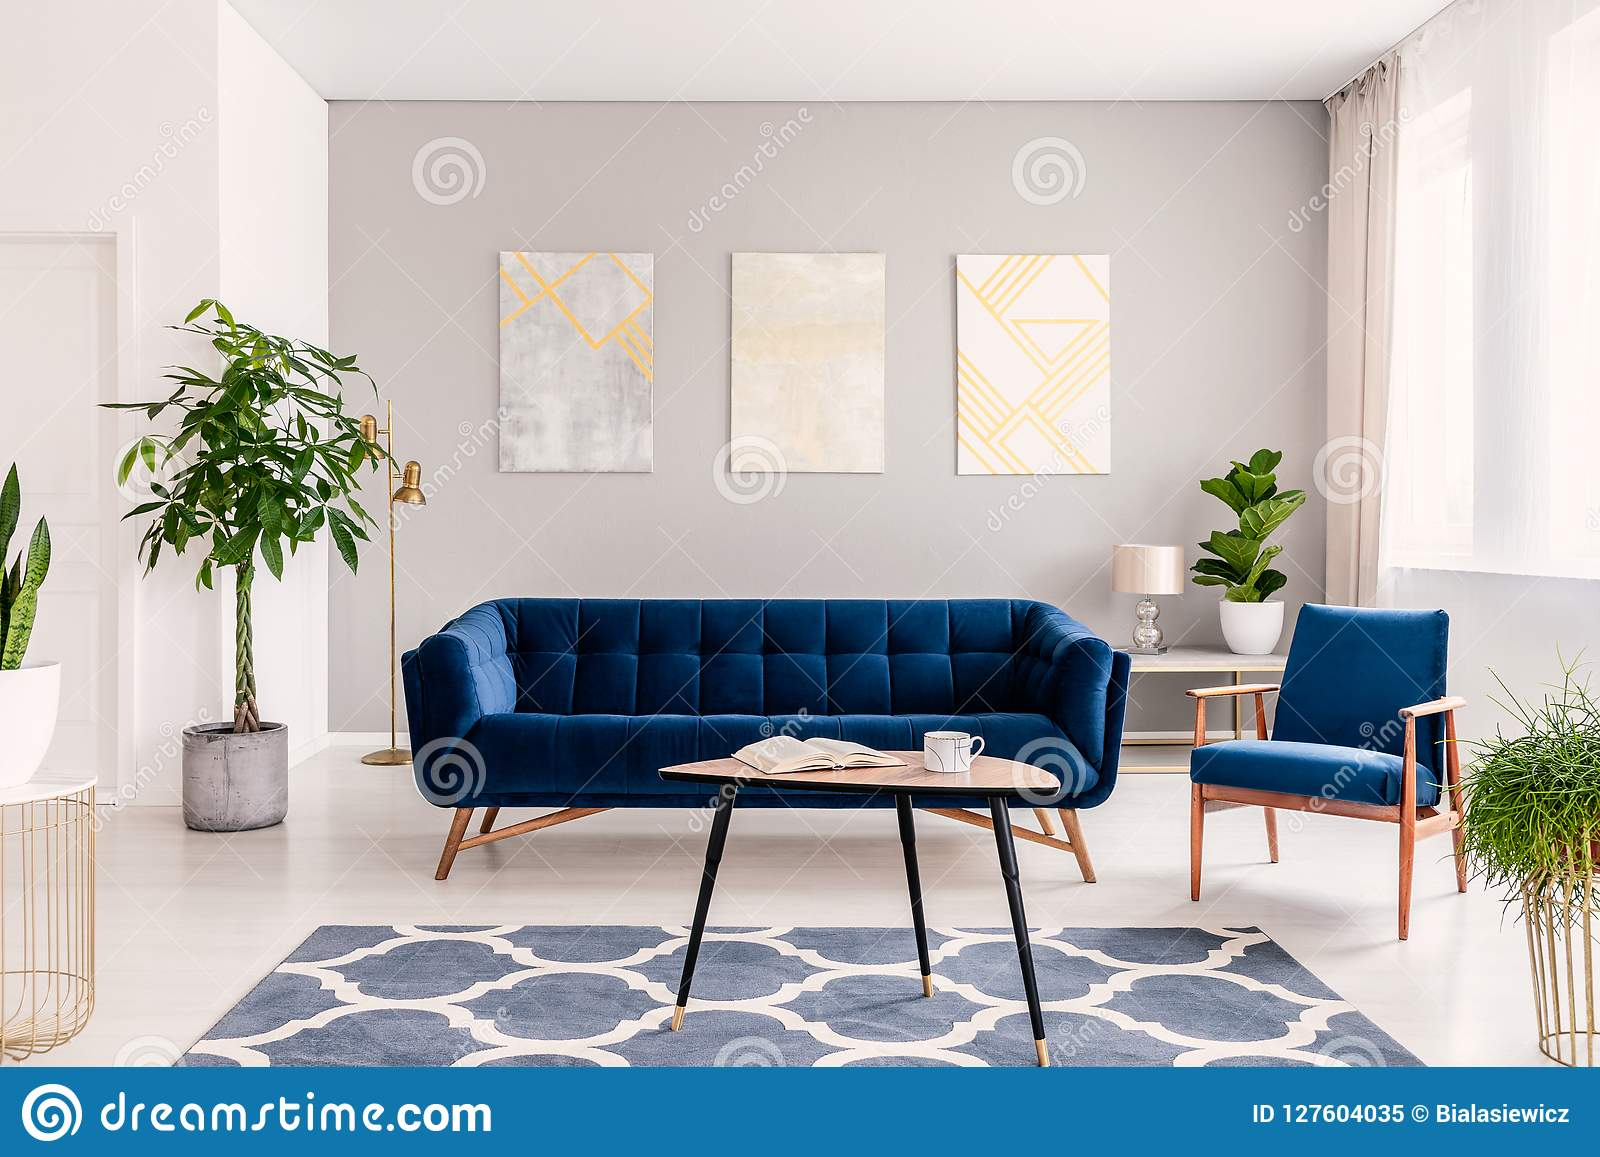 sofas dark blue large sectional sofa covers elegant living room interior with a set of and armchair gold